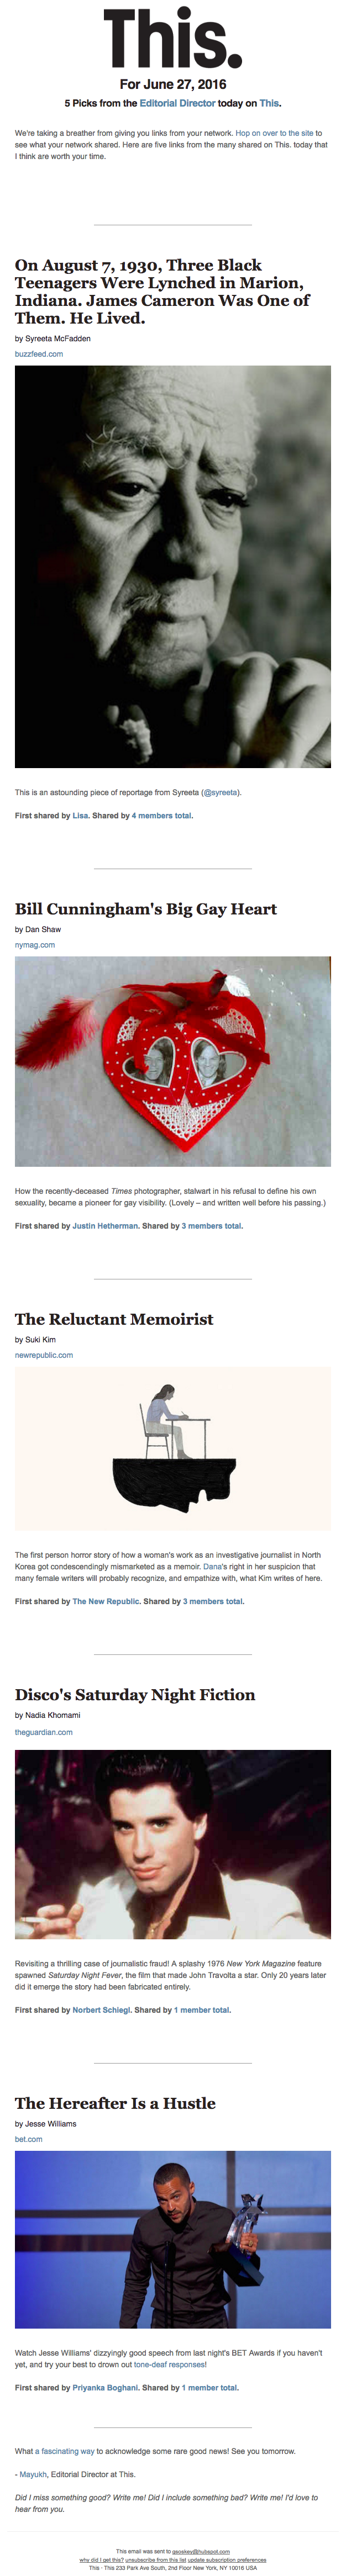 this-newsletter-example.png